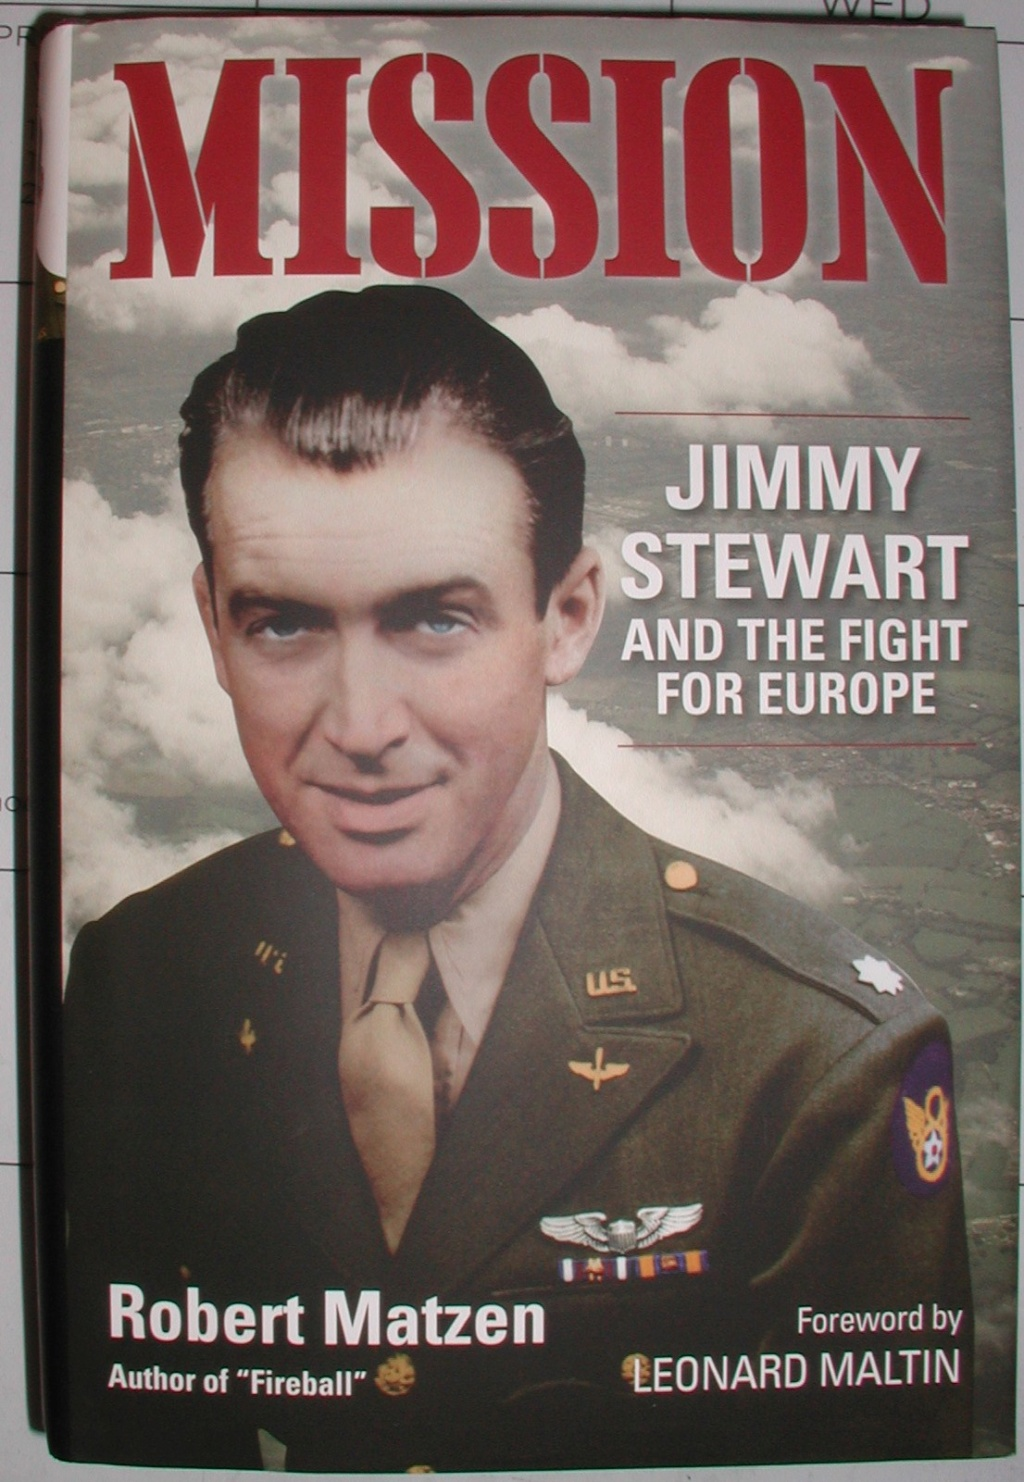 MISSION - Jimmy Stewart and the fight for Europe Missio12